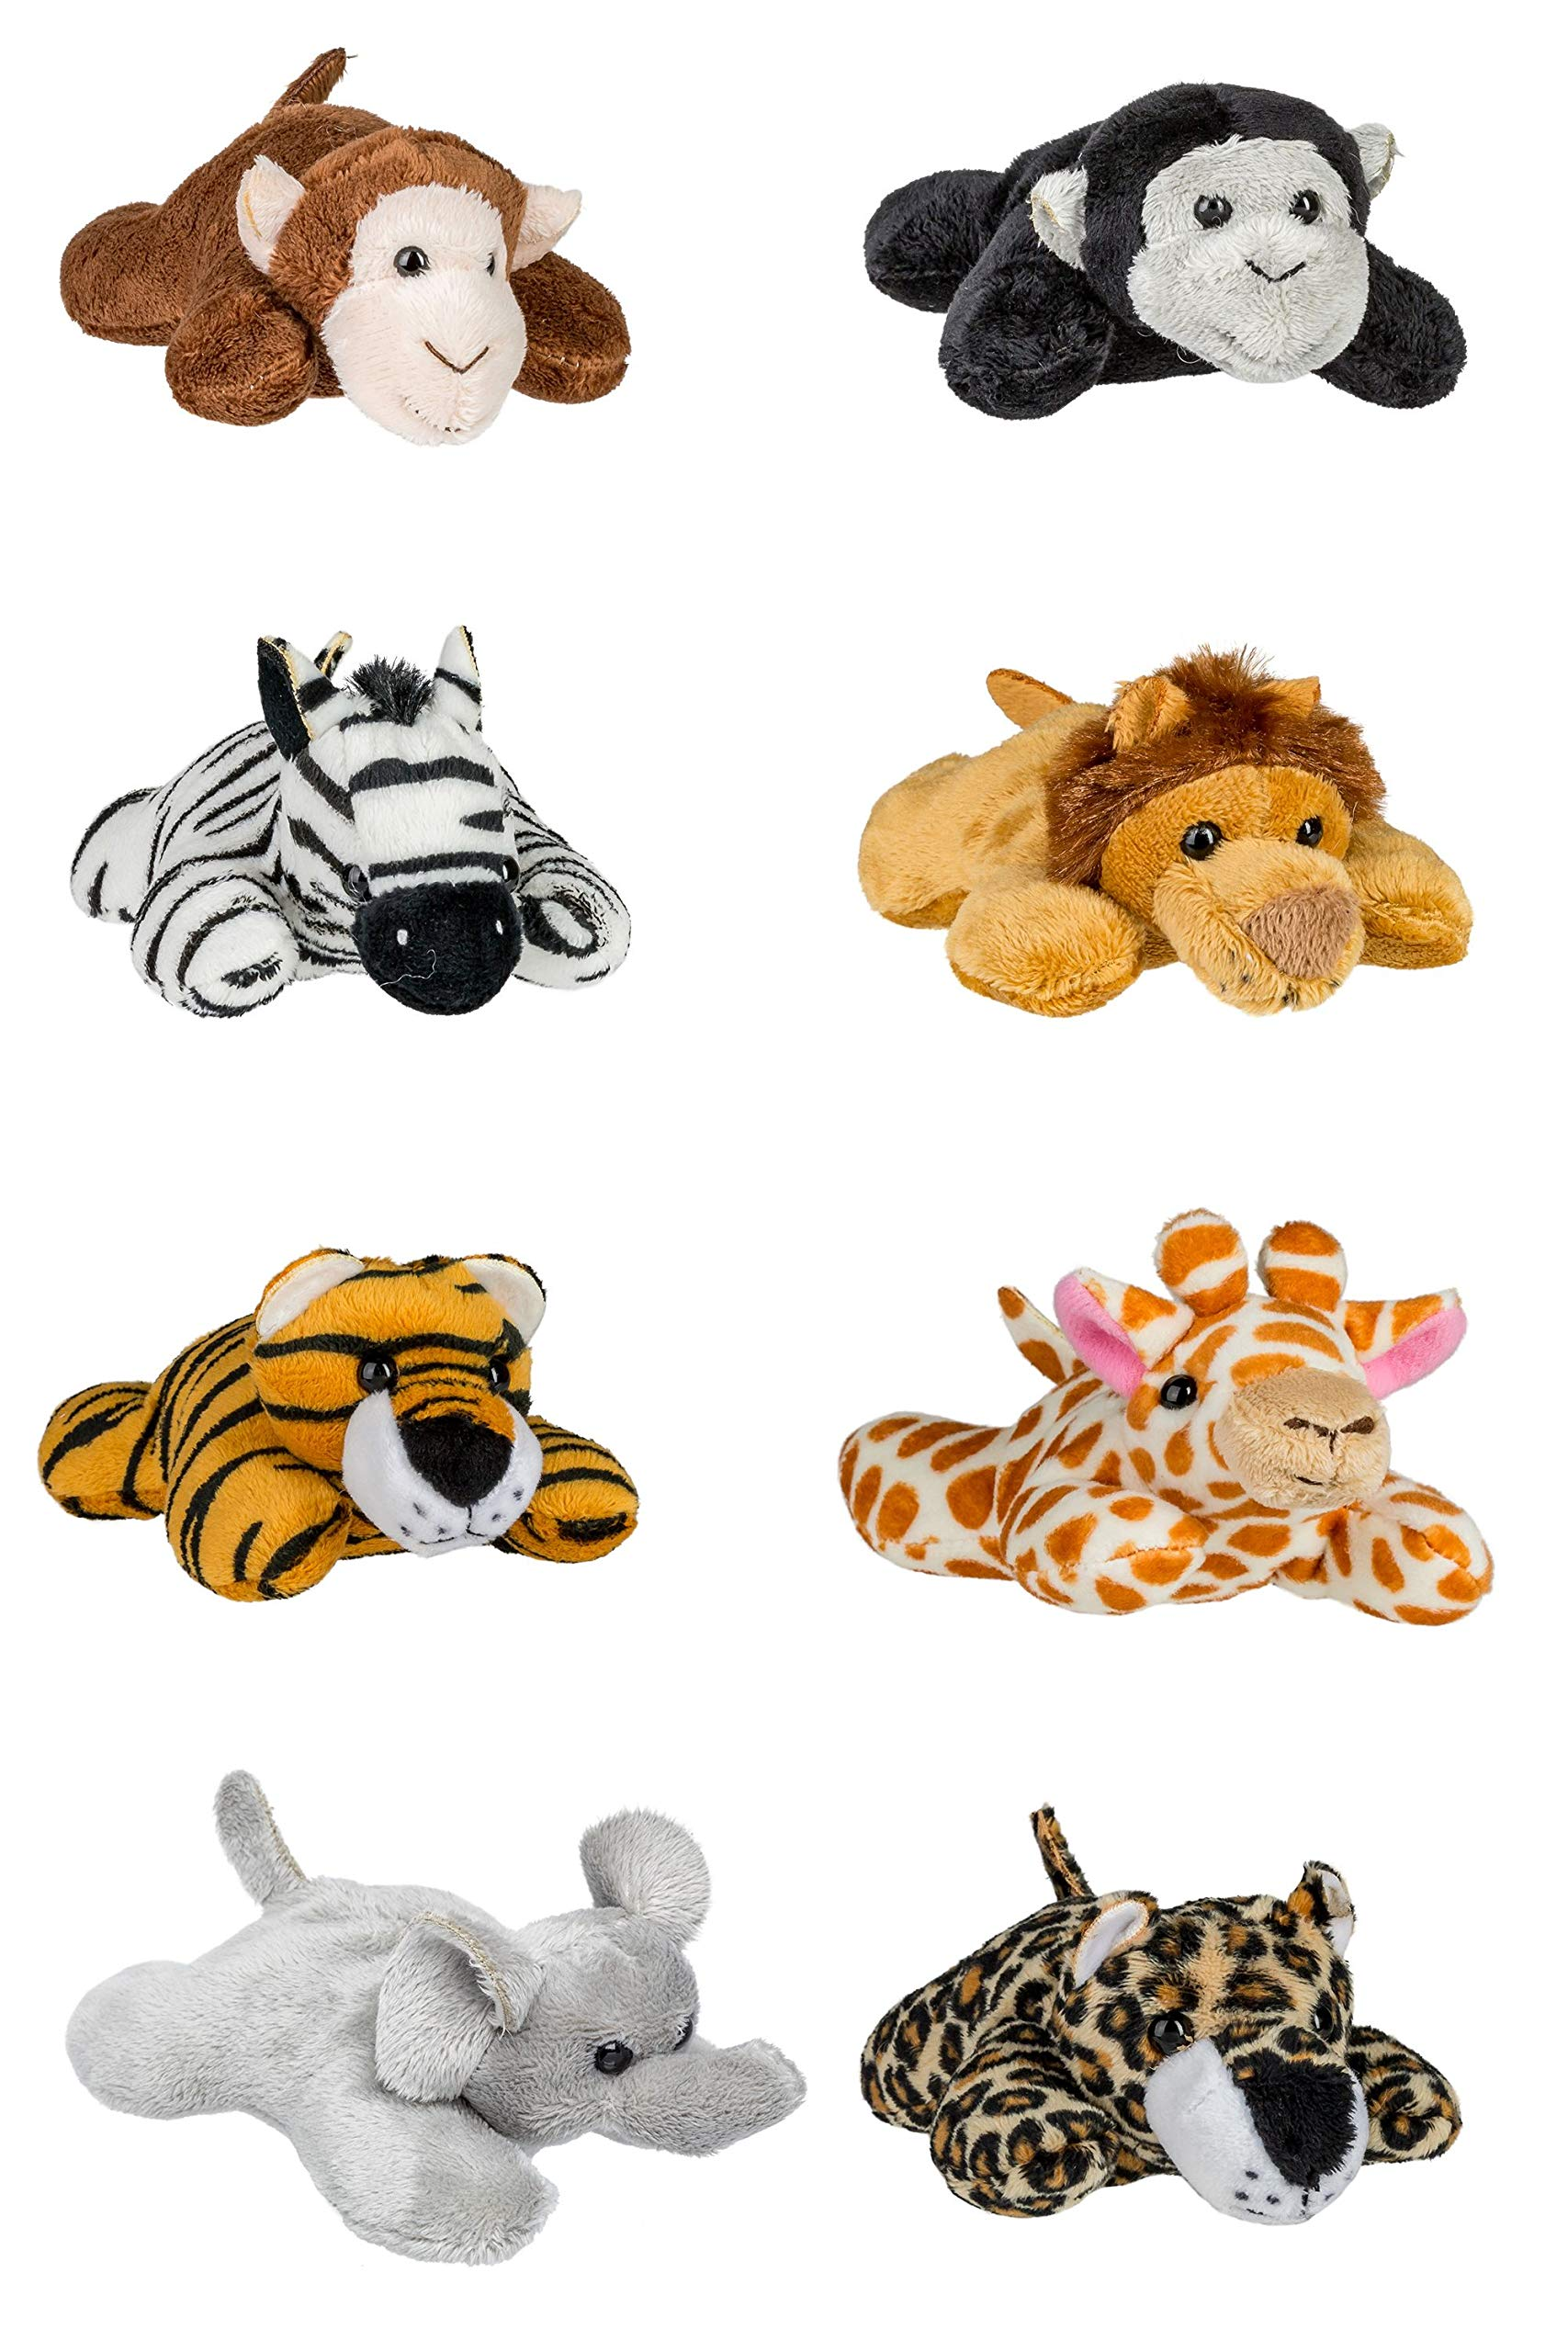 Wildlife Tree 8 Pack Jungle Safari Mini 4 Inch Small Stuffed Animals, Variety of Zoo Animal Toys, Party Favors for Kids by Wildlife Tree